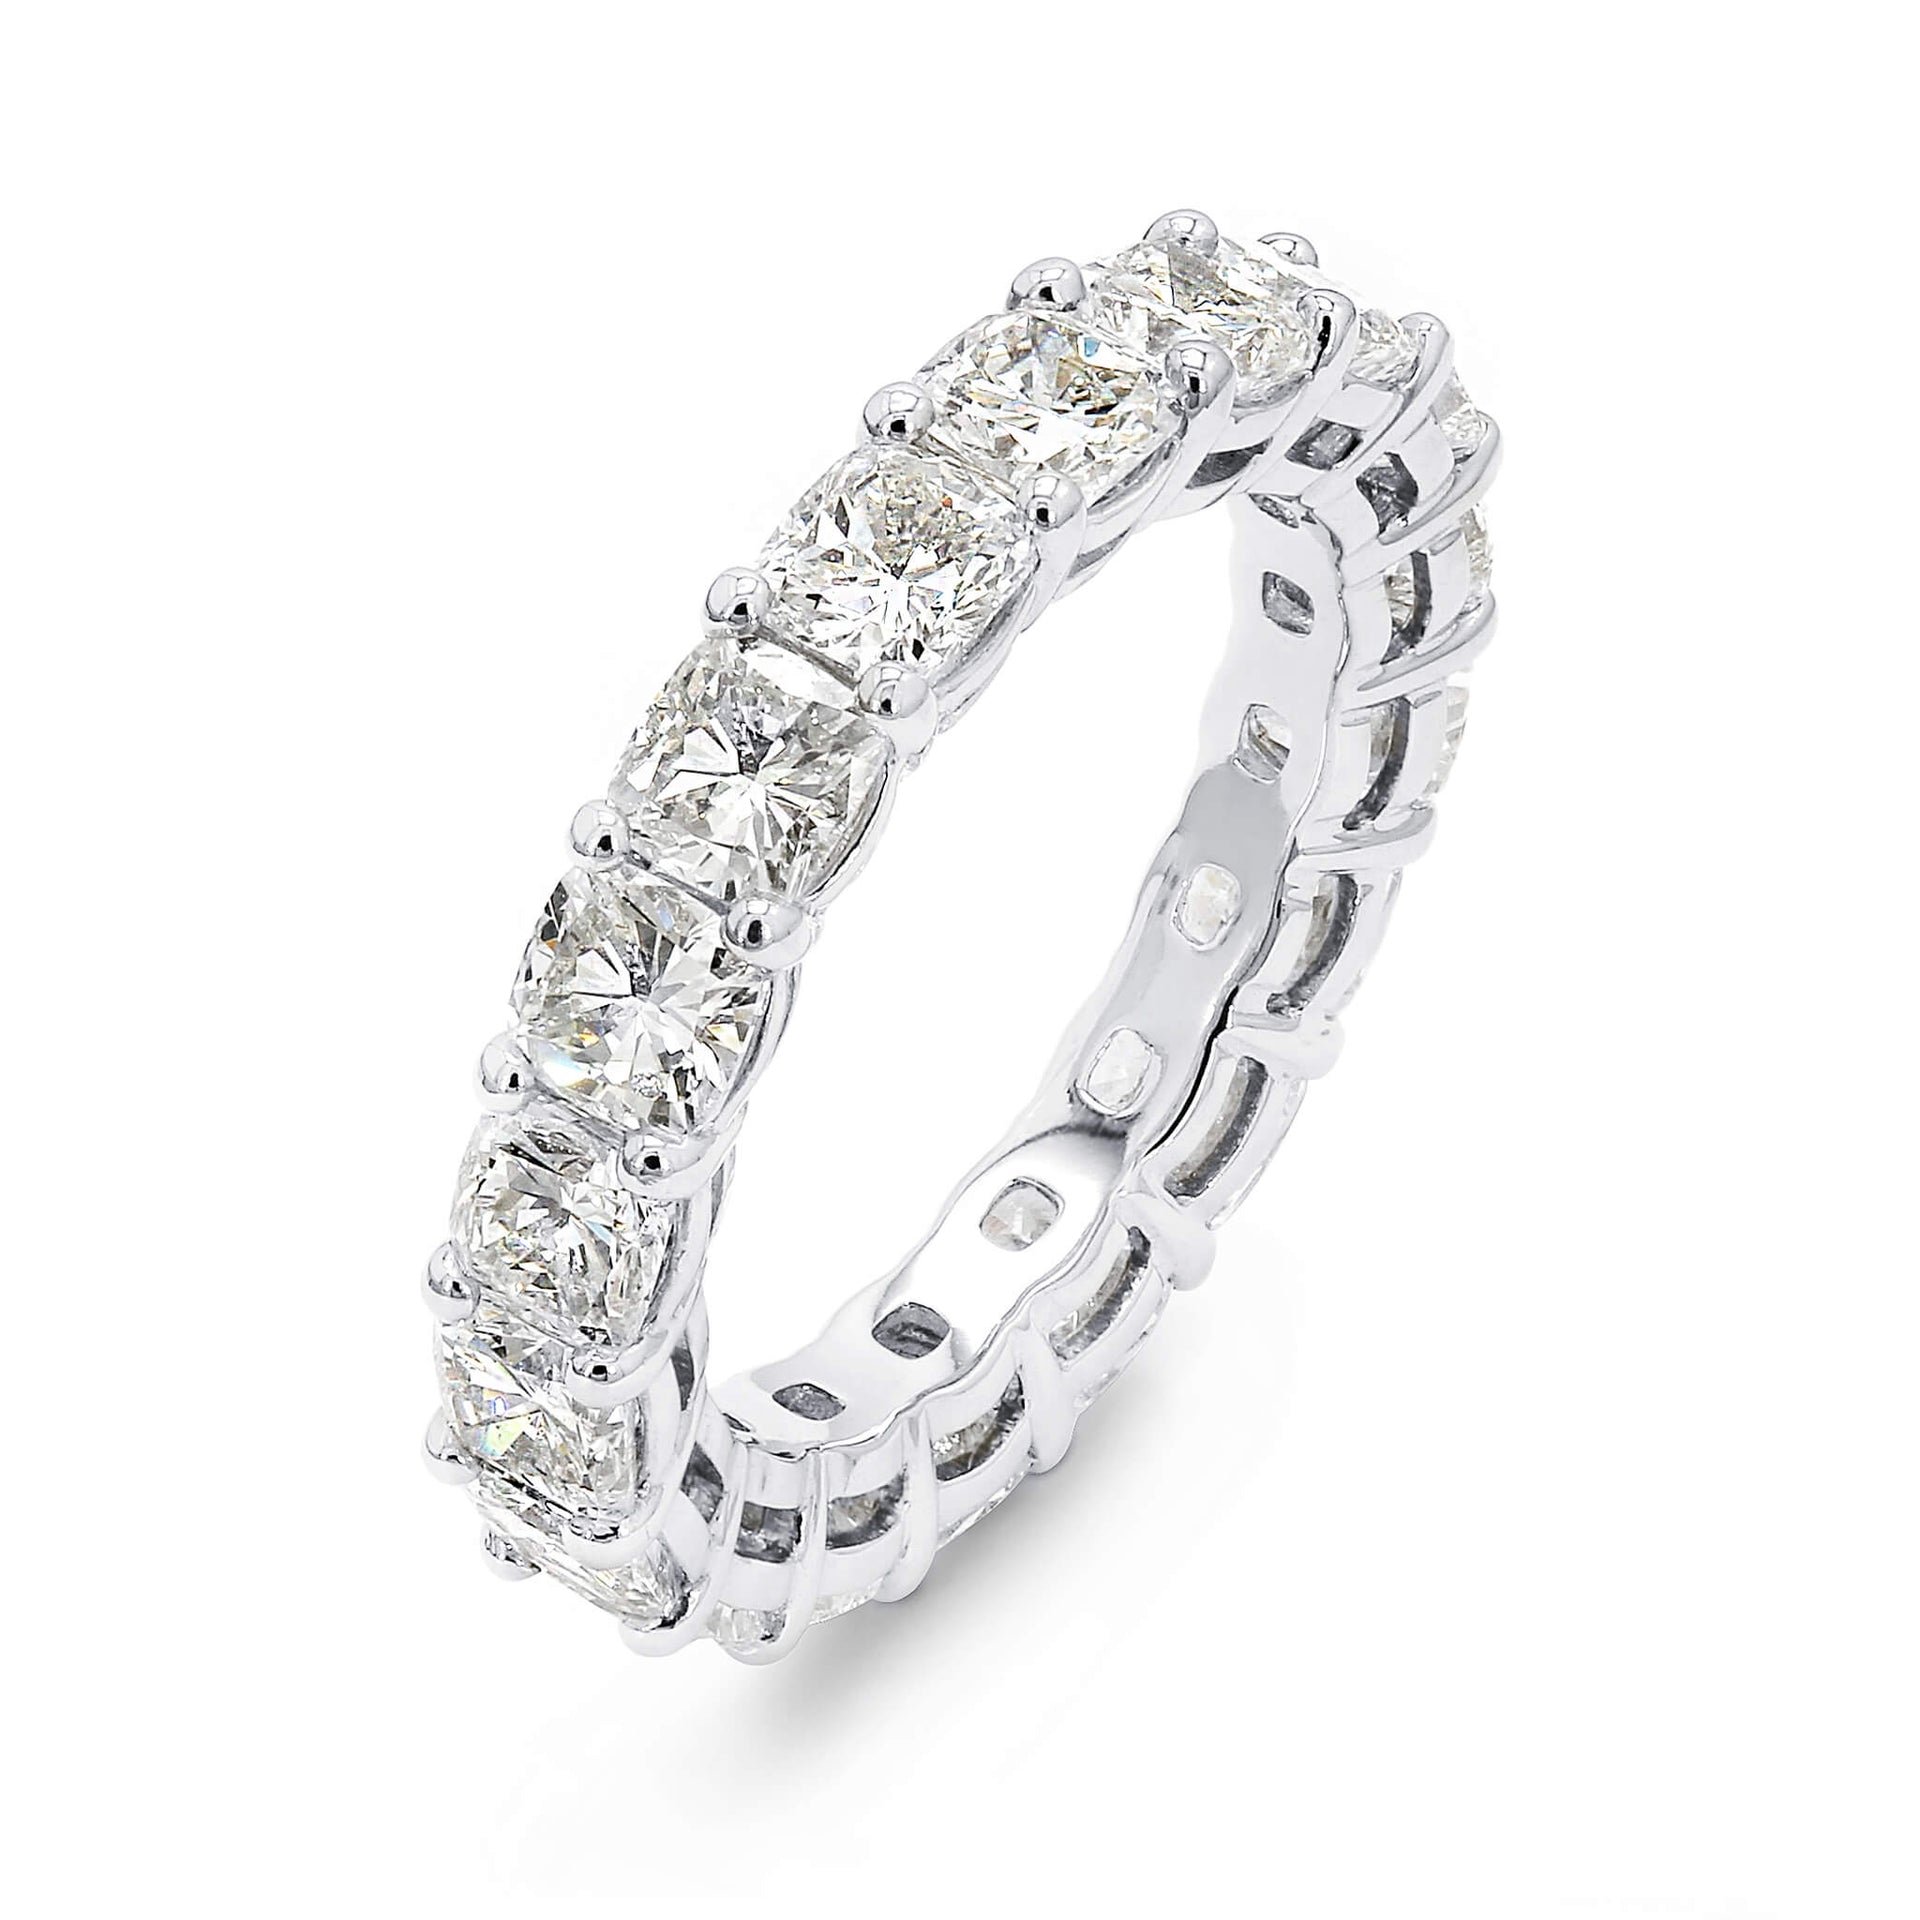 4.00 Carat Cushion Cut Eternity Diamond Ring in Platinum 3D View